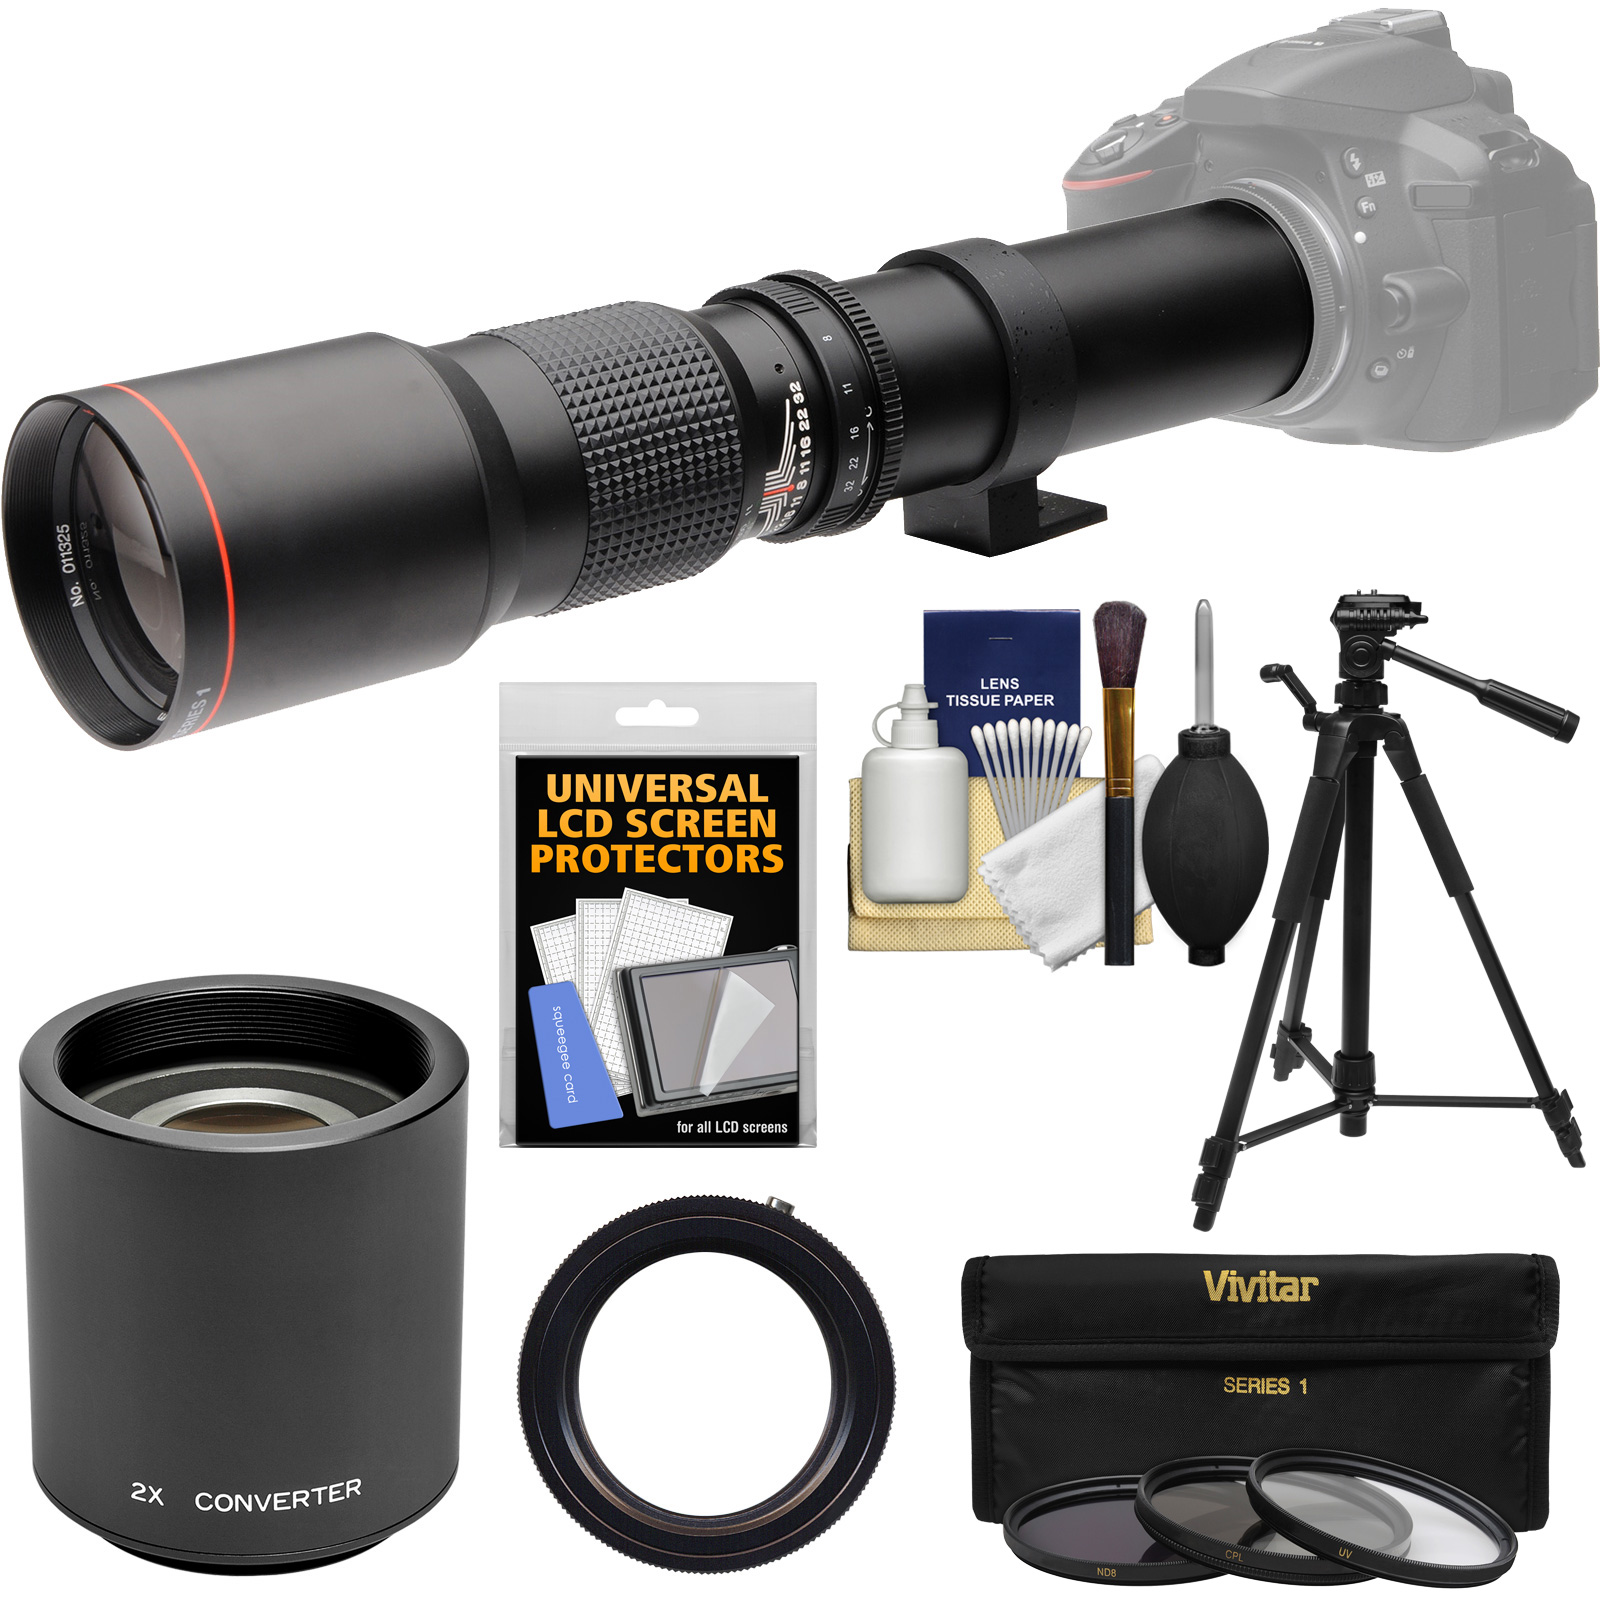 Vivitar 500mm f/8.0 Telephoto Lens with 2x Teleconverter (=1000mm) + Tripod + 3 Filters Kit for Nikon D3200, D3300, D5300, D5500, D7100, D7200 Camera